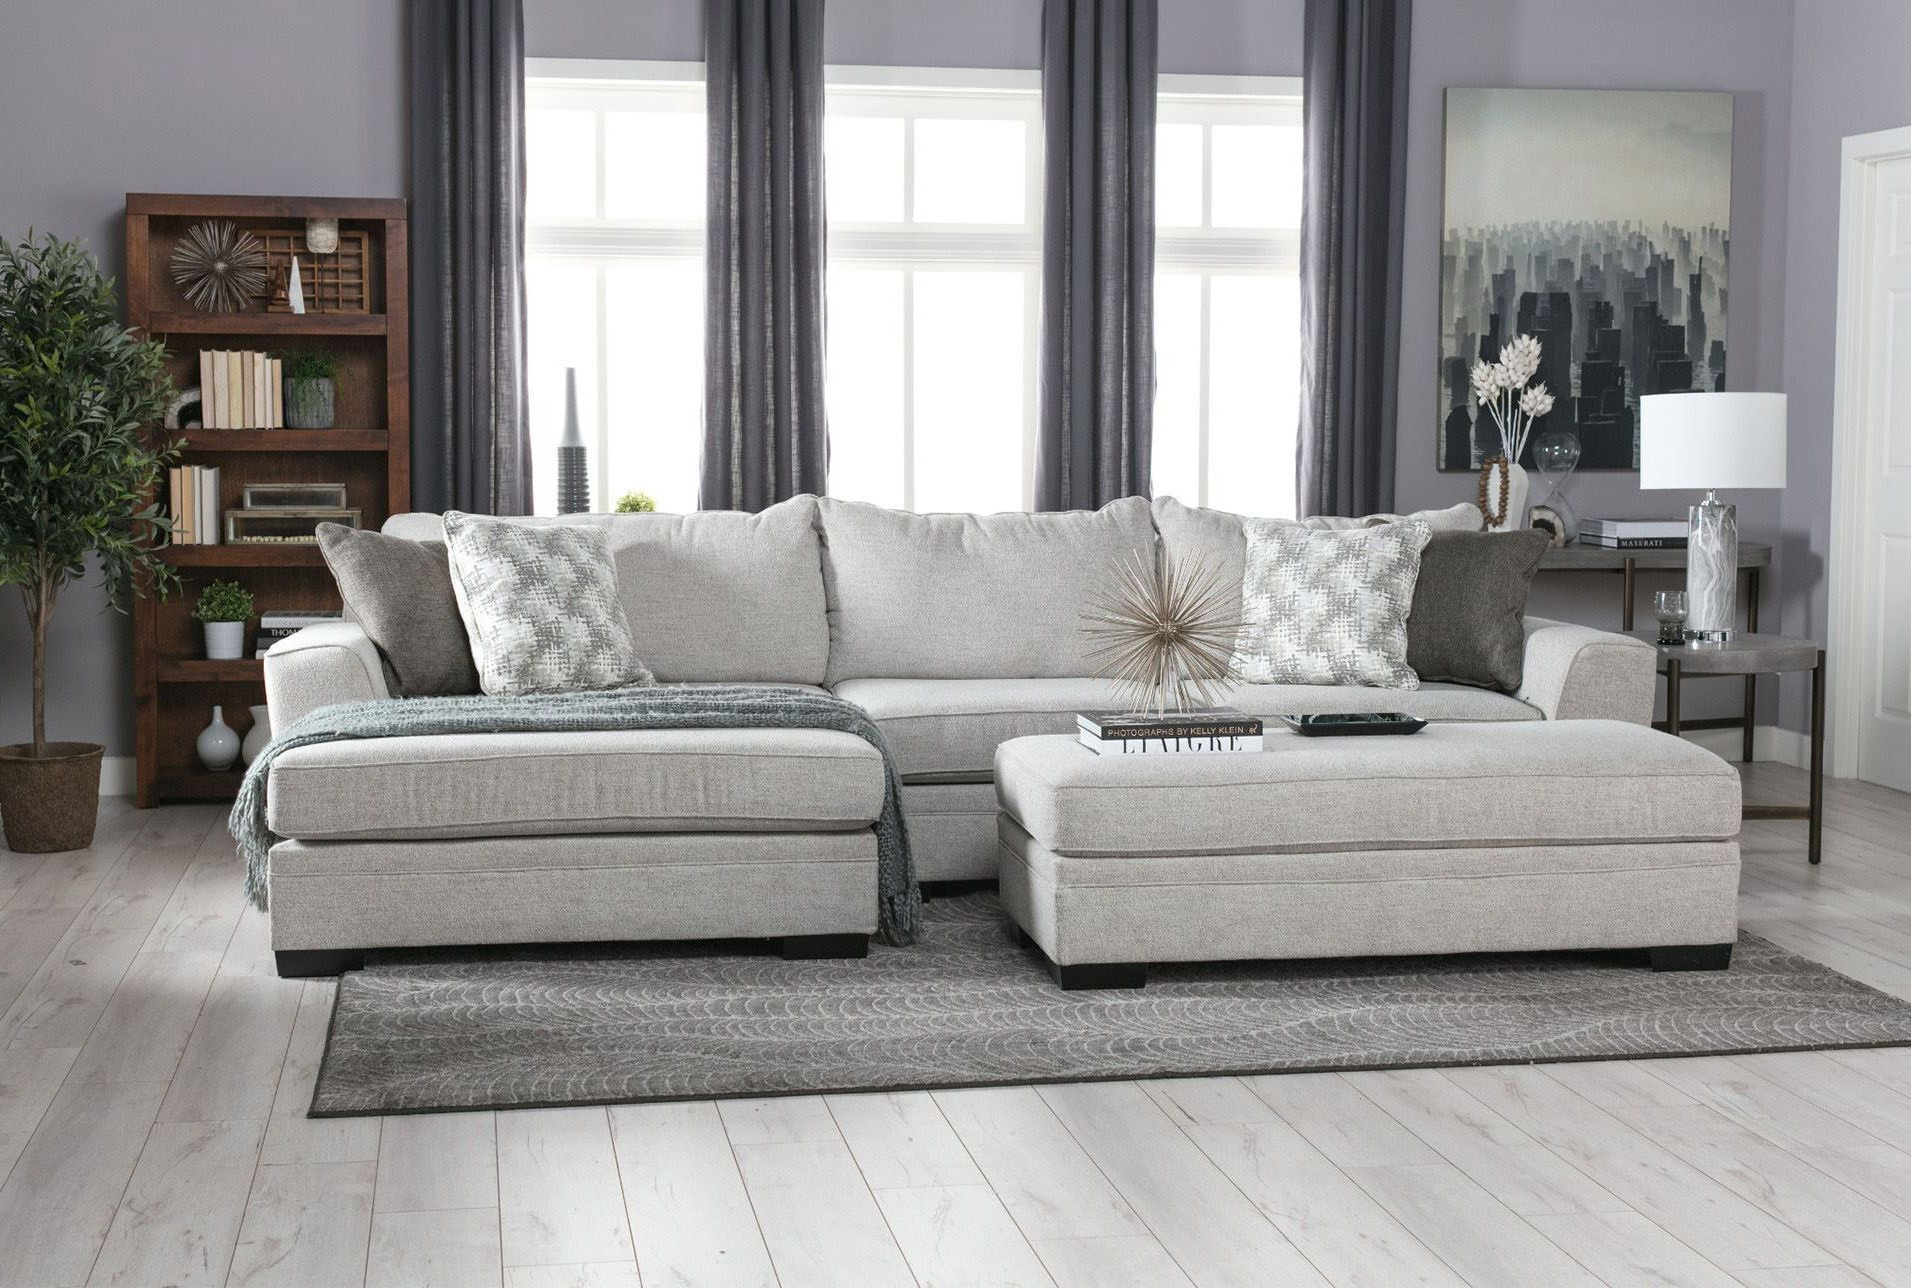 Living Regarding Aquarius Light Grey 2 Piece Sectionals With Raf Chaise (View 12 of 20)